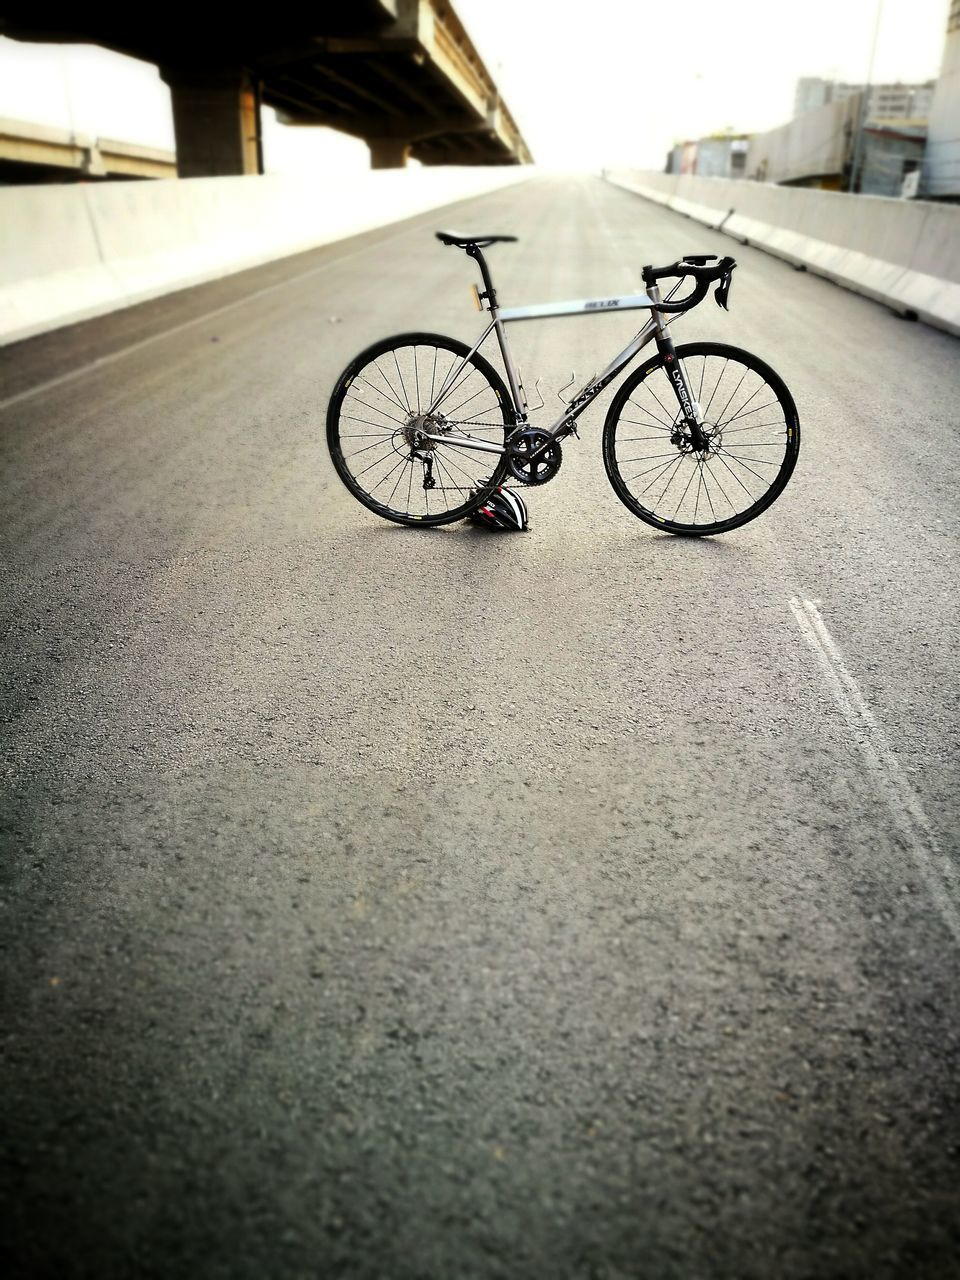 bicycle, transportation, mode of transport, land vehicle, stationary, no people, day, outdoors, built structure, architecture, city, close-up